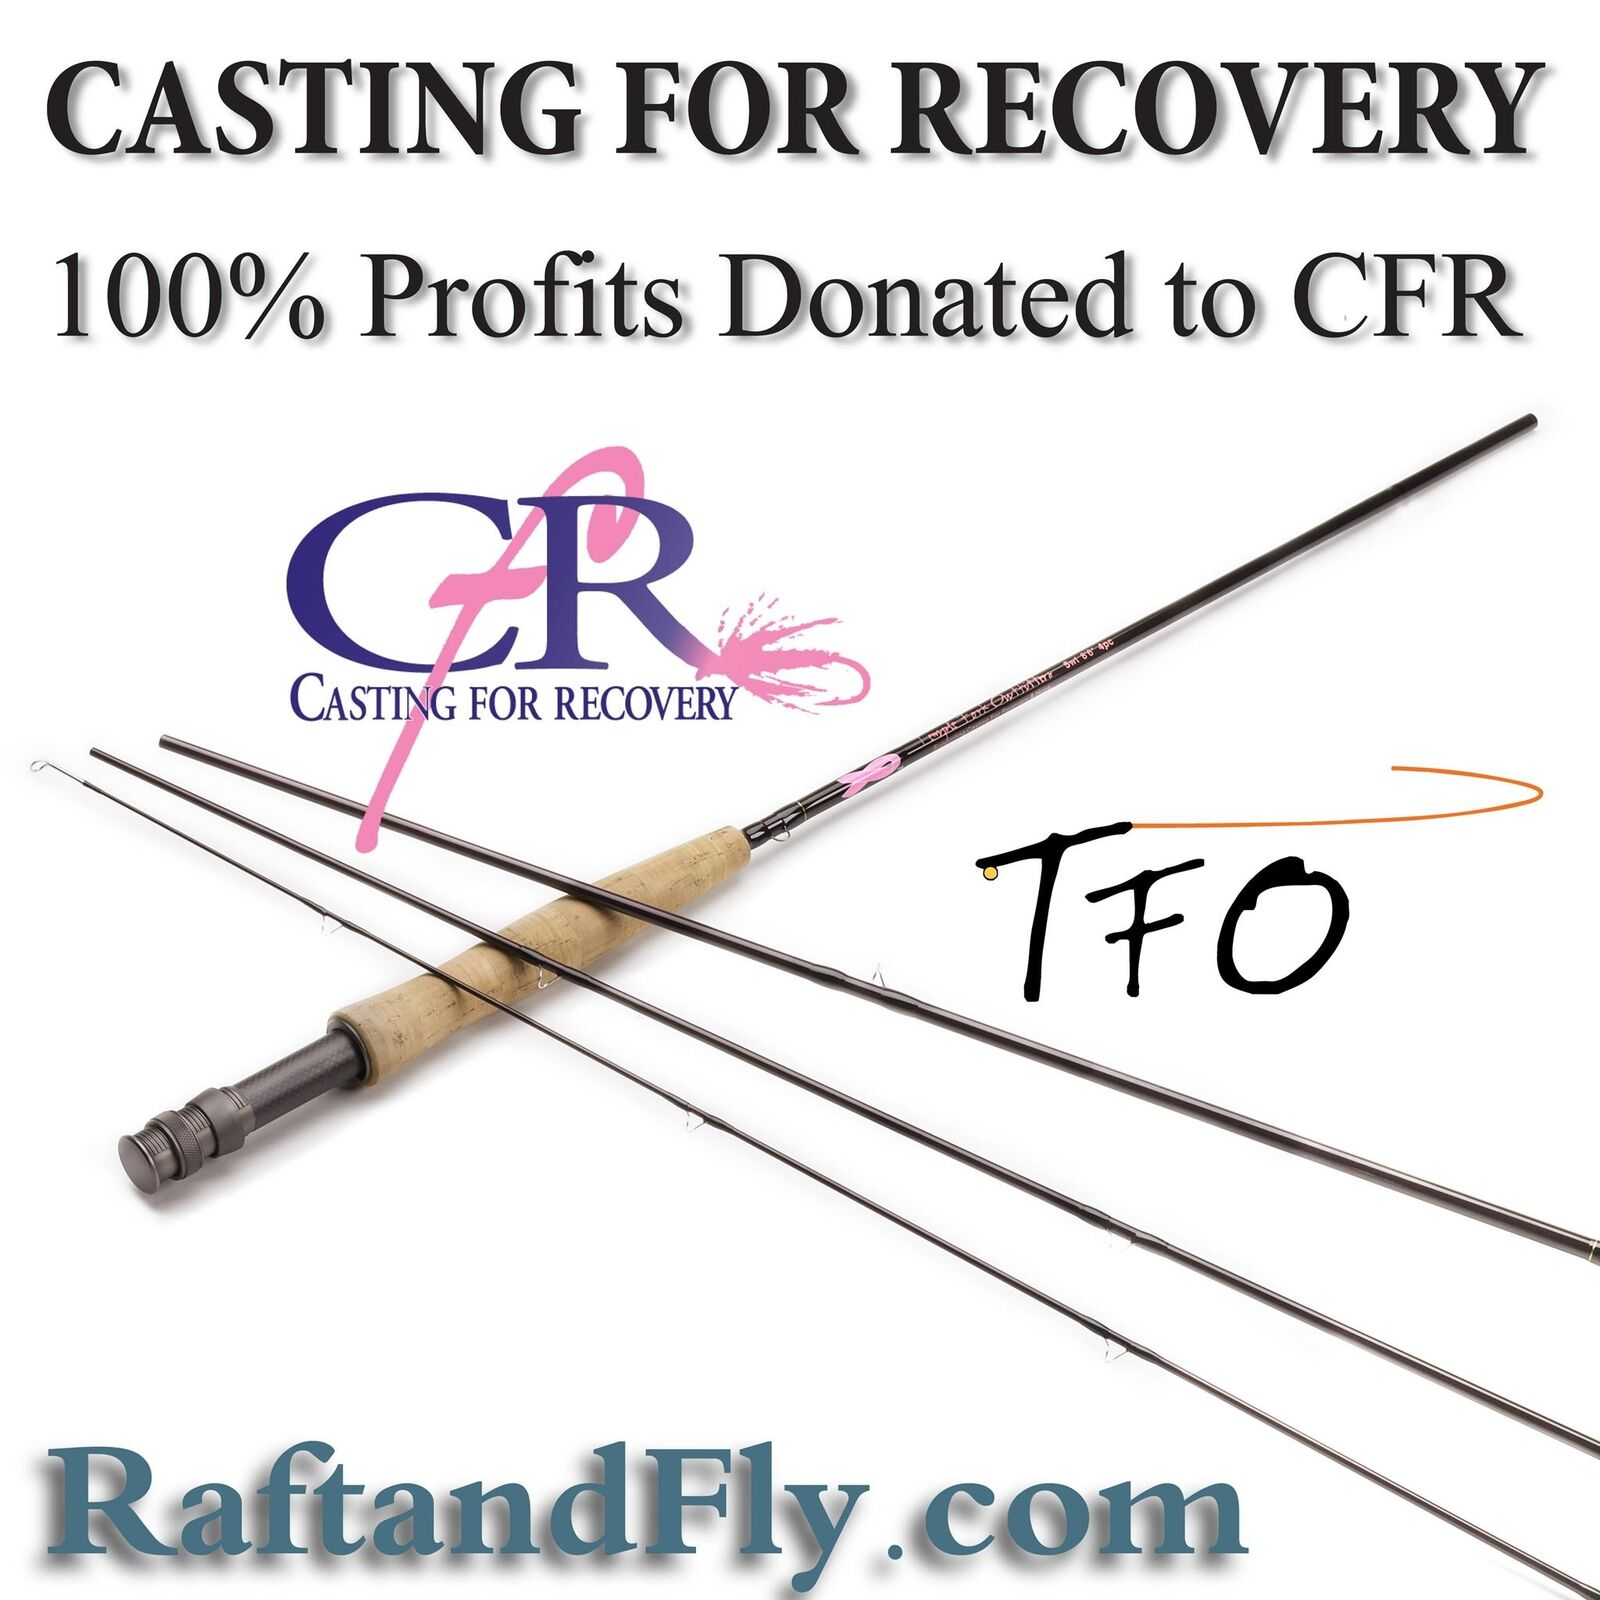 TFO Casting For Recovery 8wt - 100% proceeds to CFR